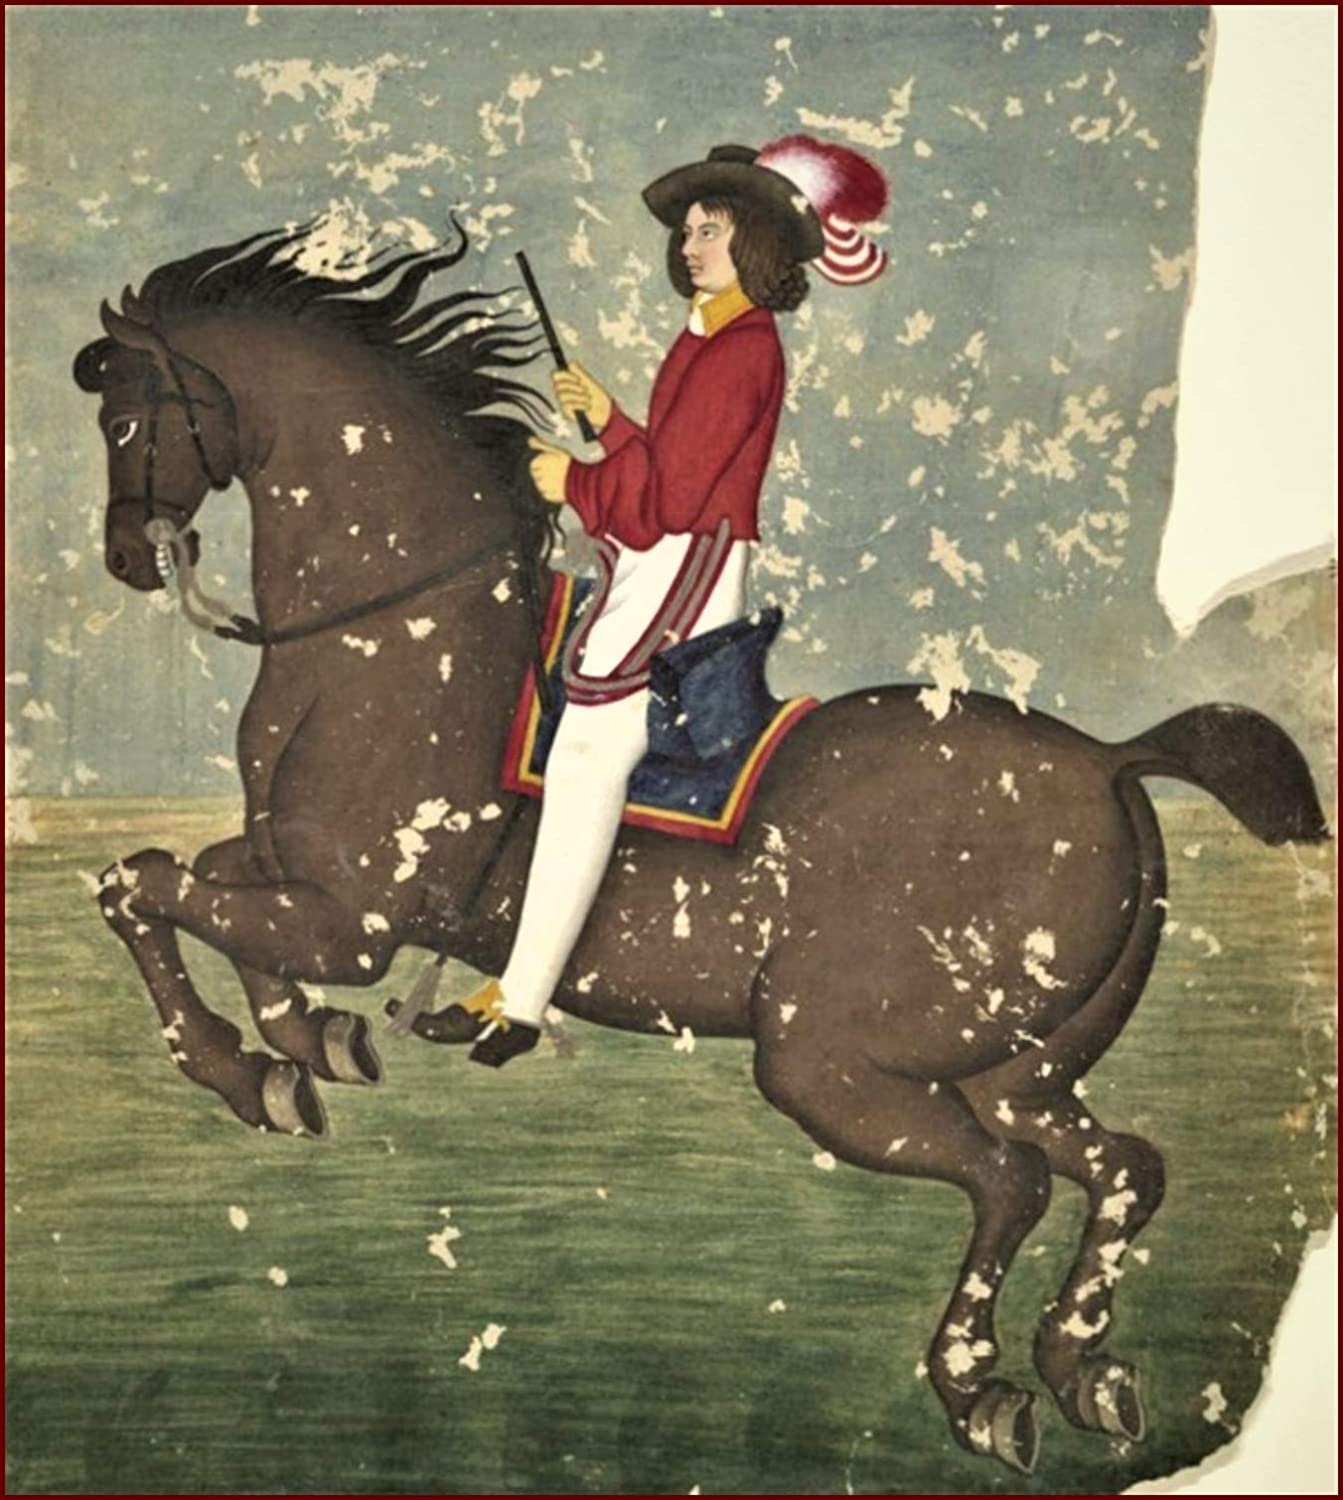 Amazon.com: Books & Arts Museum | Unknown Painter, c. 1800 : European Man  on Horseback, Persia, Persian, Iran Miniature Art Print, Size 12 X 15  inches W/Border: Posters & Prints